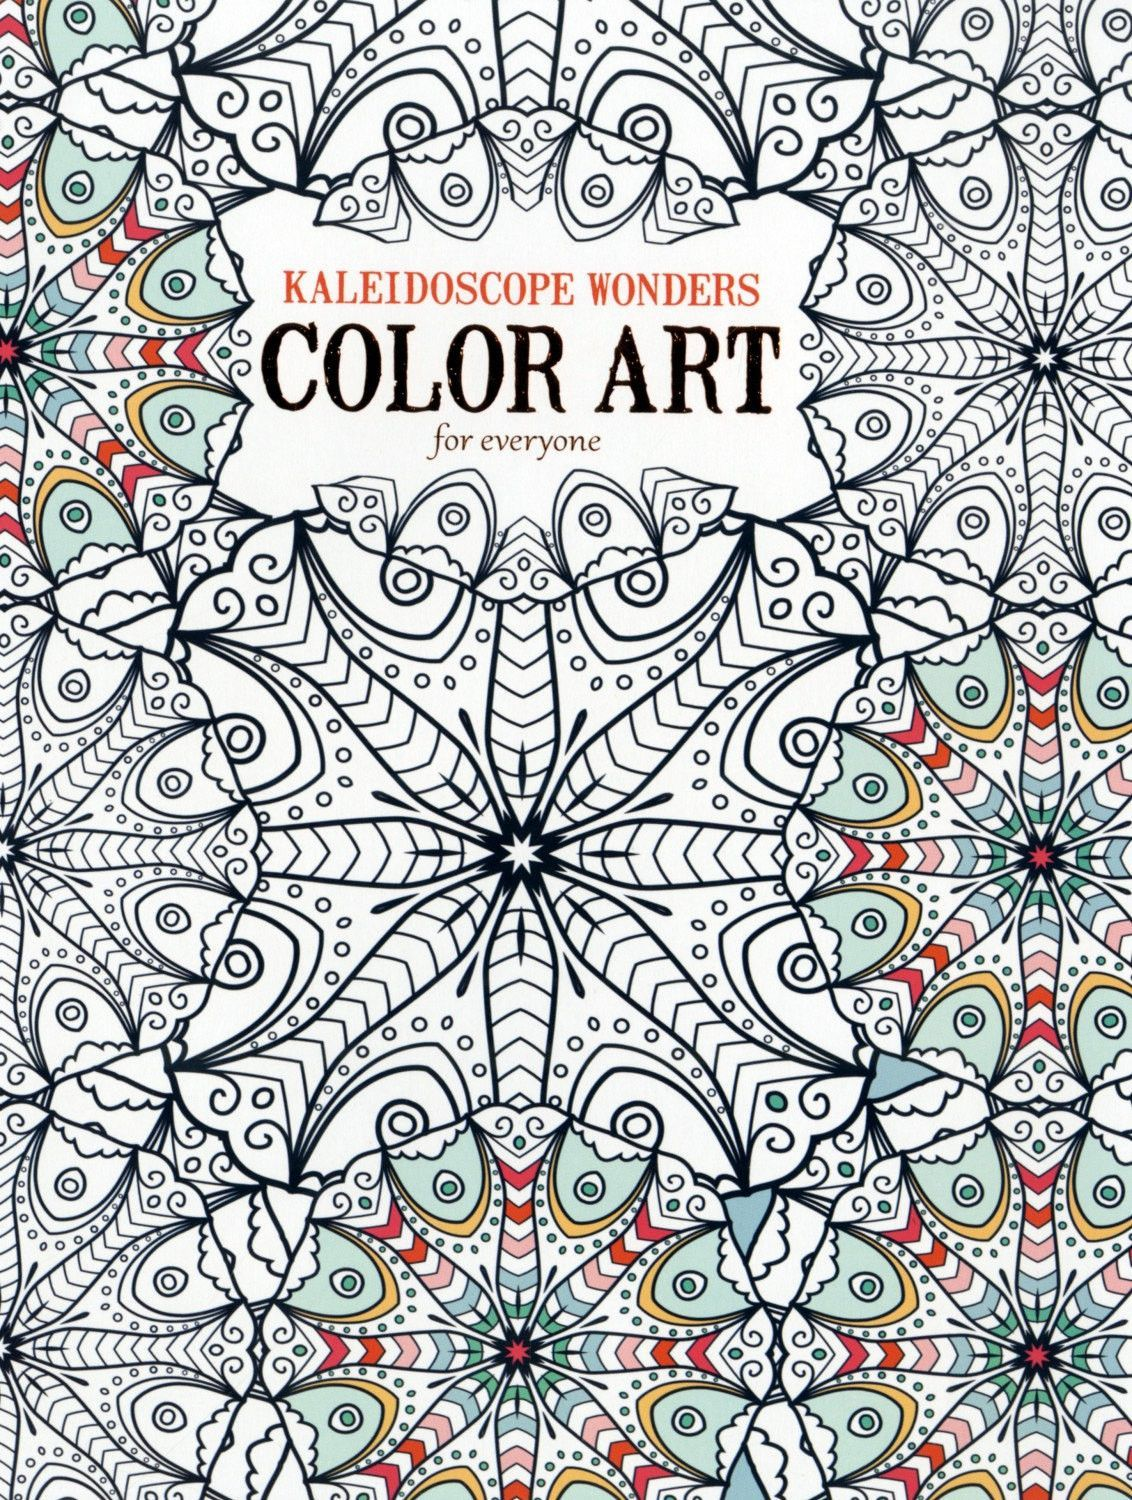 Color art kaleidoscope - Kaleidoscope Wonders Color Art For Everyone Creative Entertainment Is Yours To Enjoy When You Color Projects Found In Kaleidoscope Wonders Color Art For